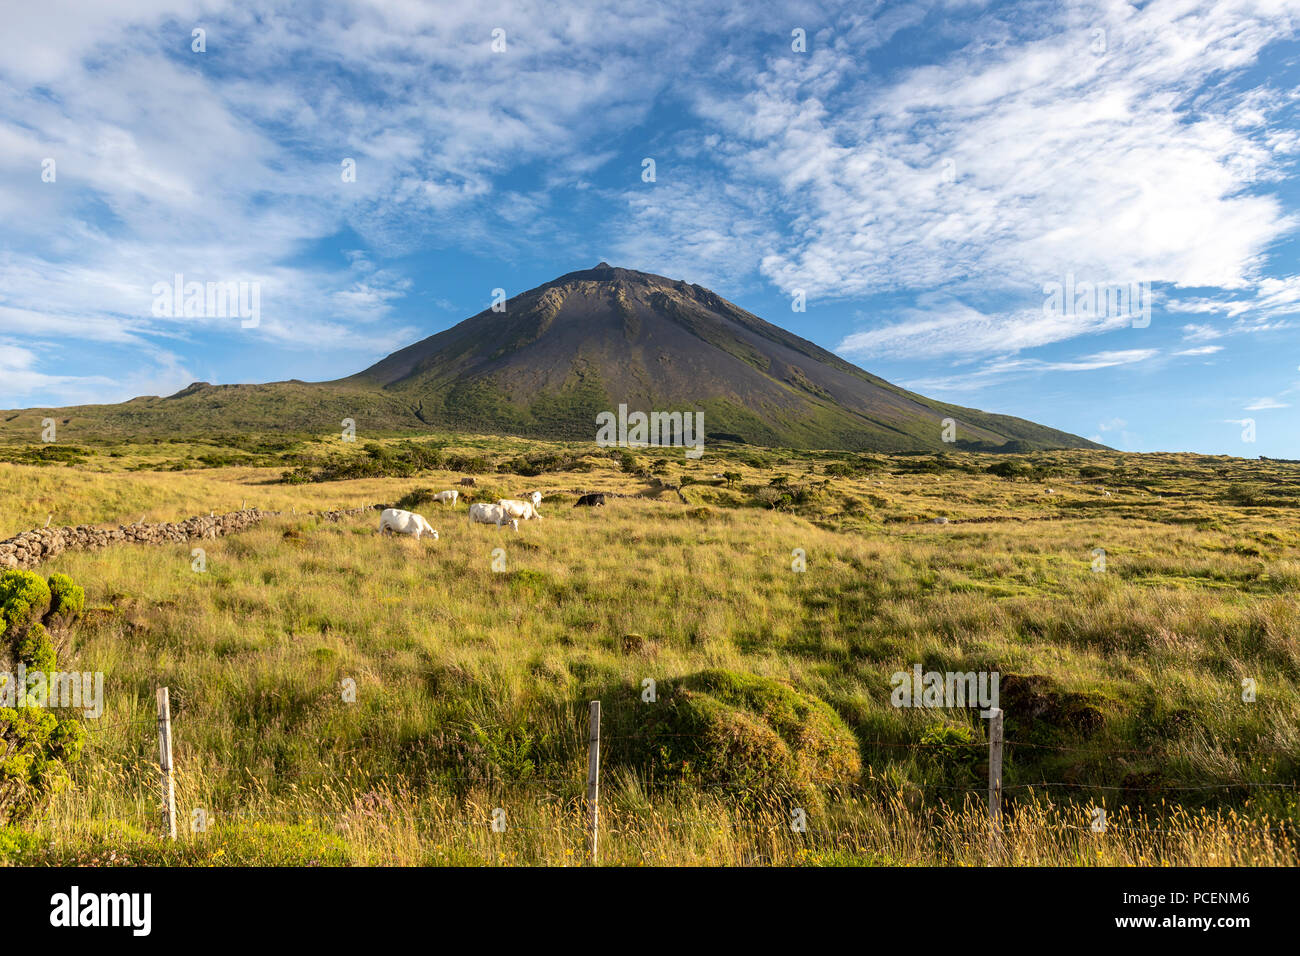 The silhouette of the Mount Pico along EN3 longitudinal road northeast of Mount Pico, Pico island, Azores, Portugal - Stock Image